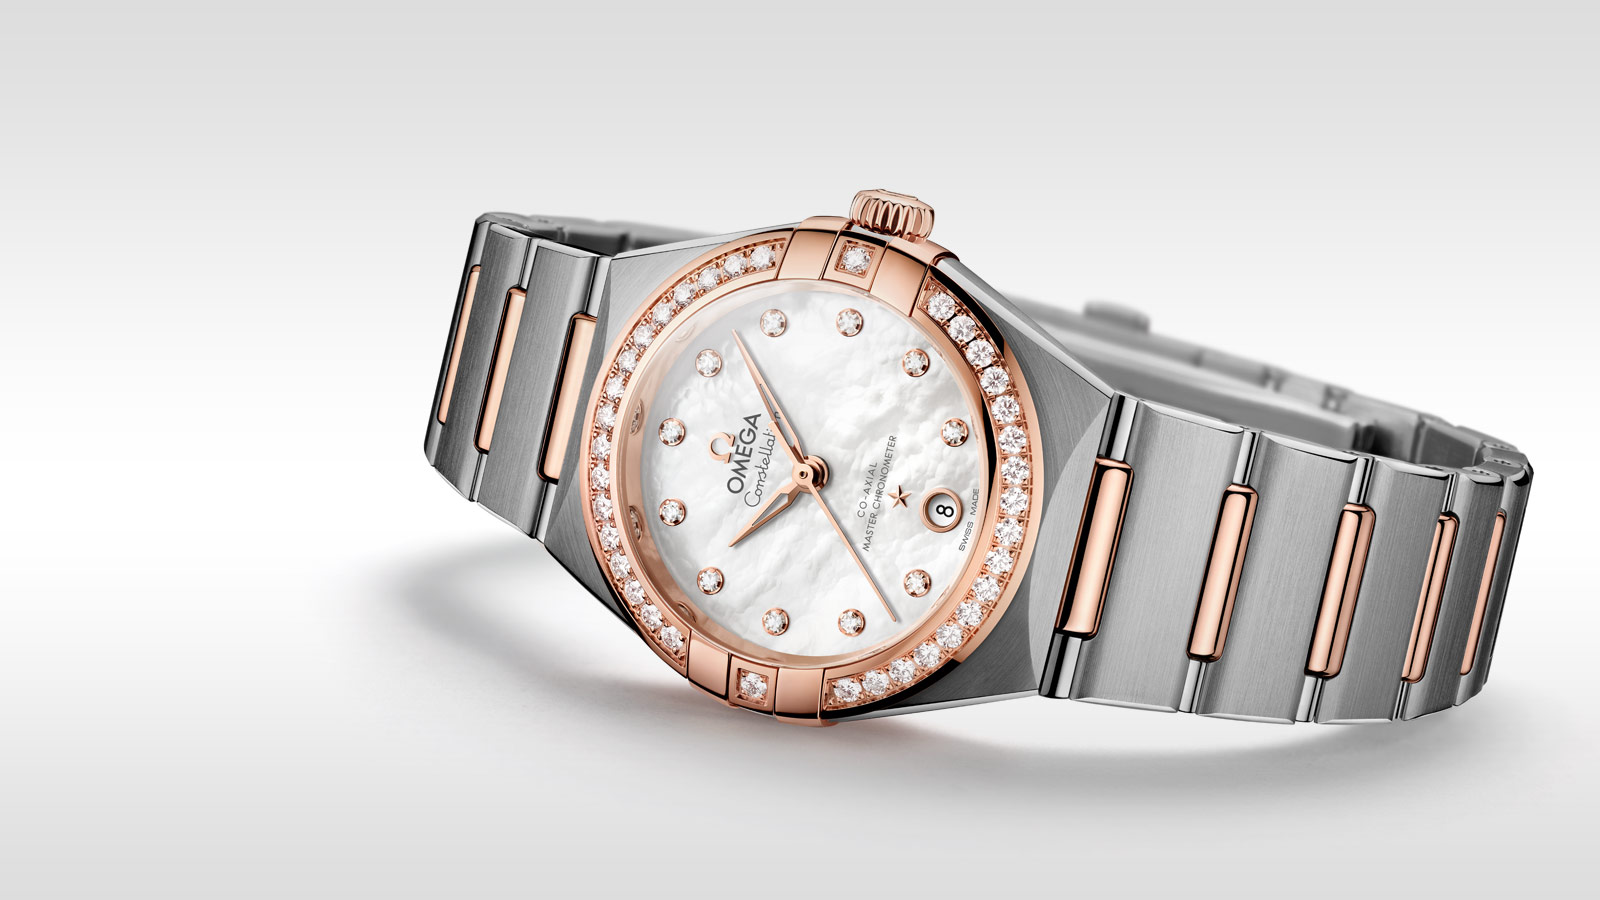 Constellation Constellation Constellation OMEGA Co‑Axial Master Chronometer 29 mm - 131.25.29.20.55.001 - Visualizzare 1